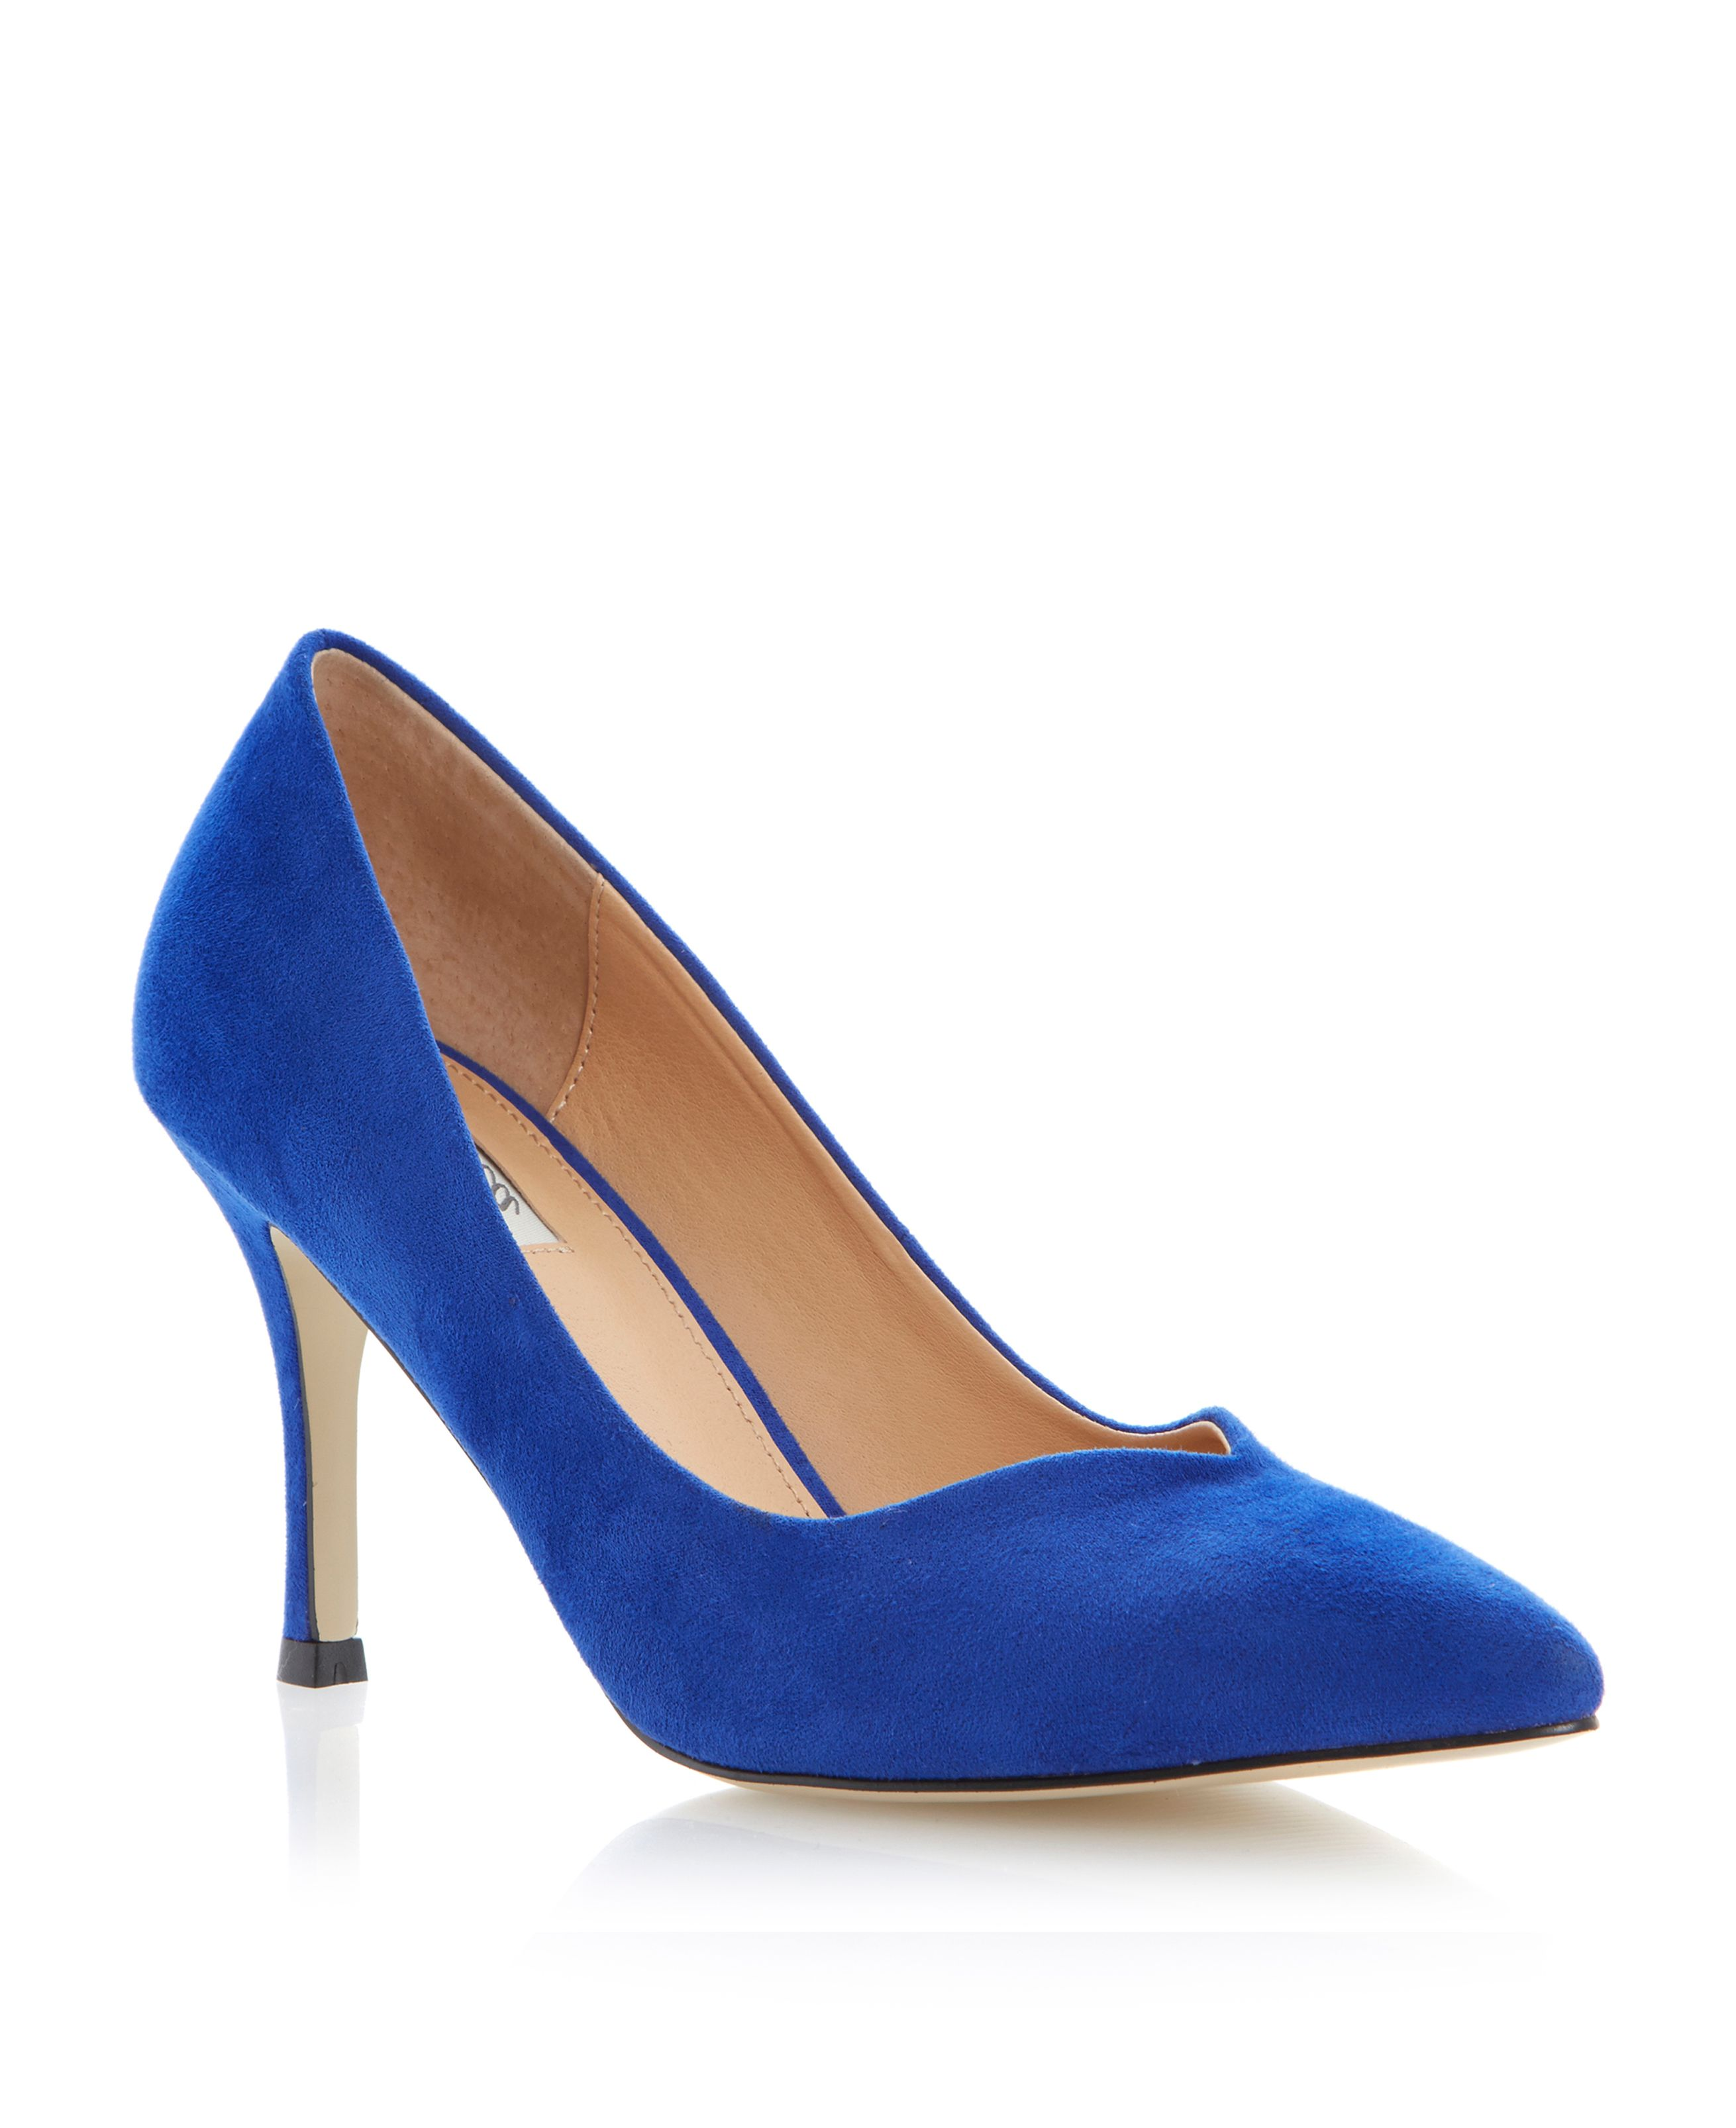 Applejack pointed toe stiletto court shoes